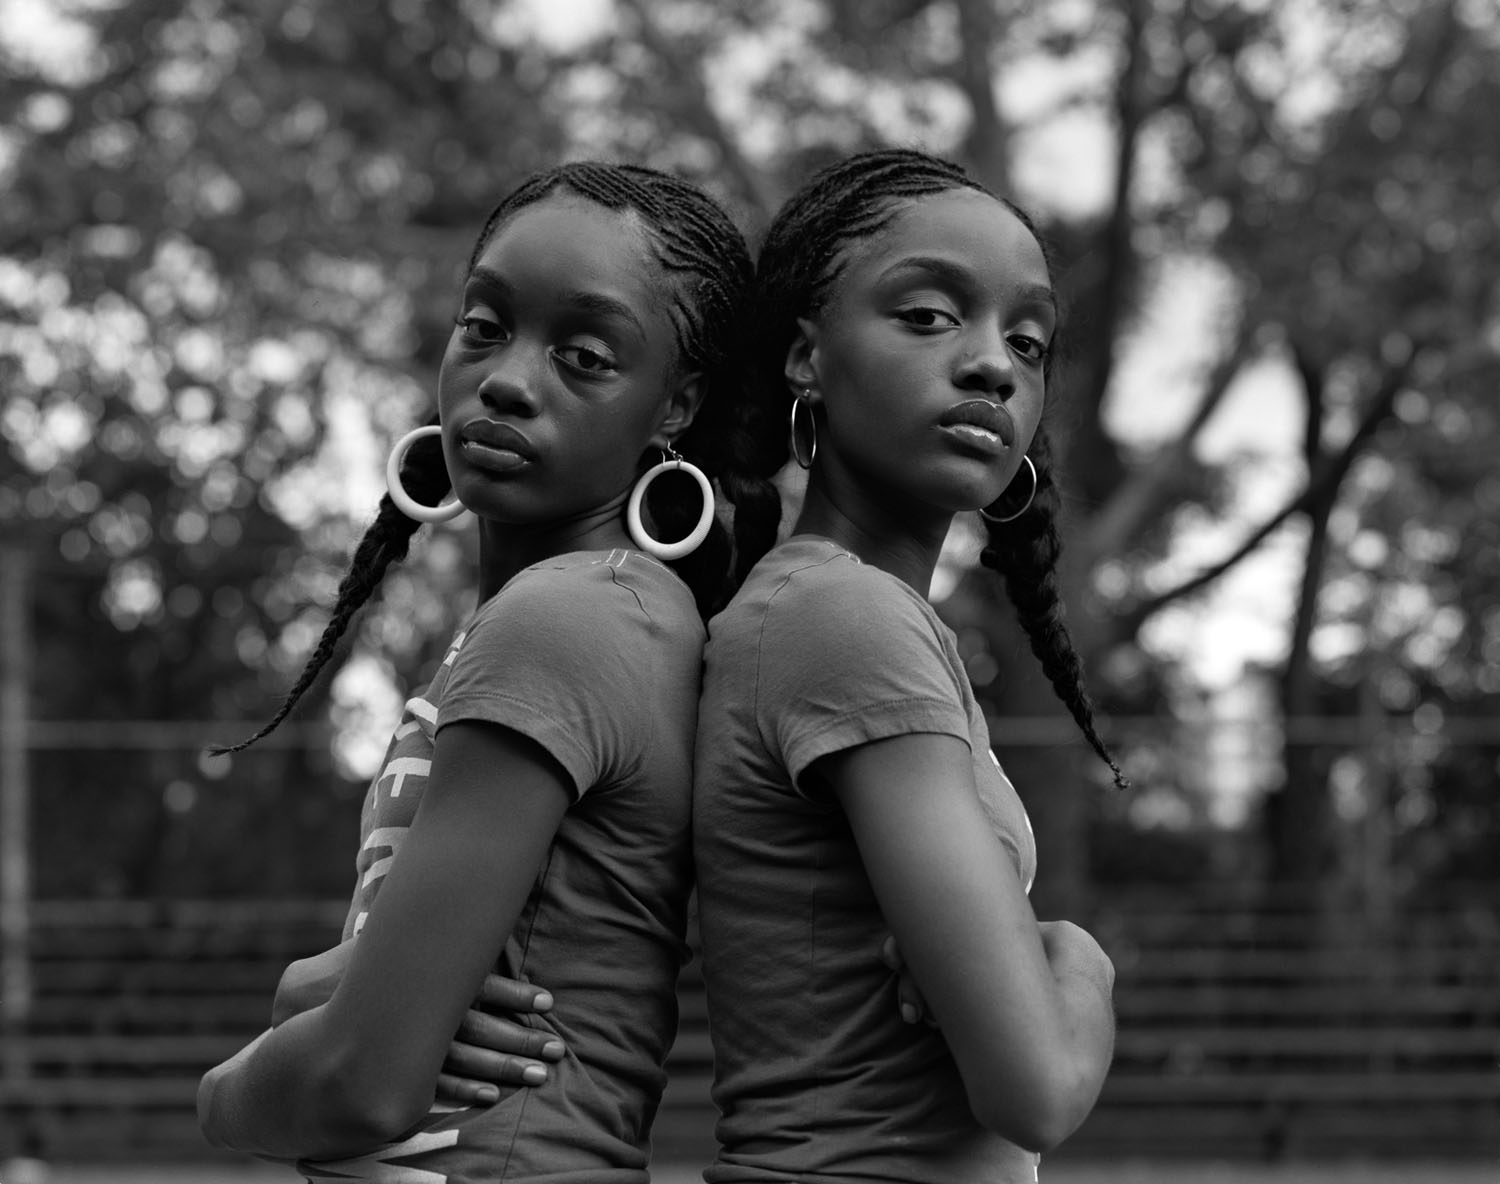 Elegance and Eloquence, twin sisters, photographed in Saint Nicholas Park in Harlem. 2007.